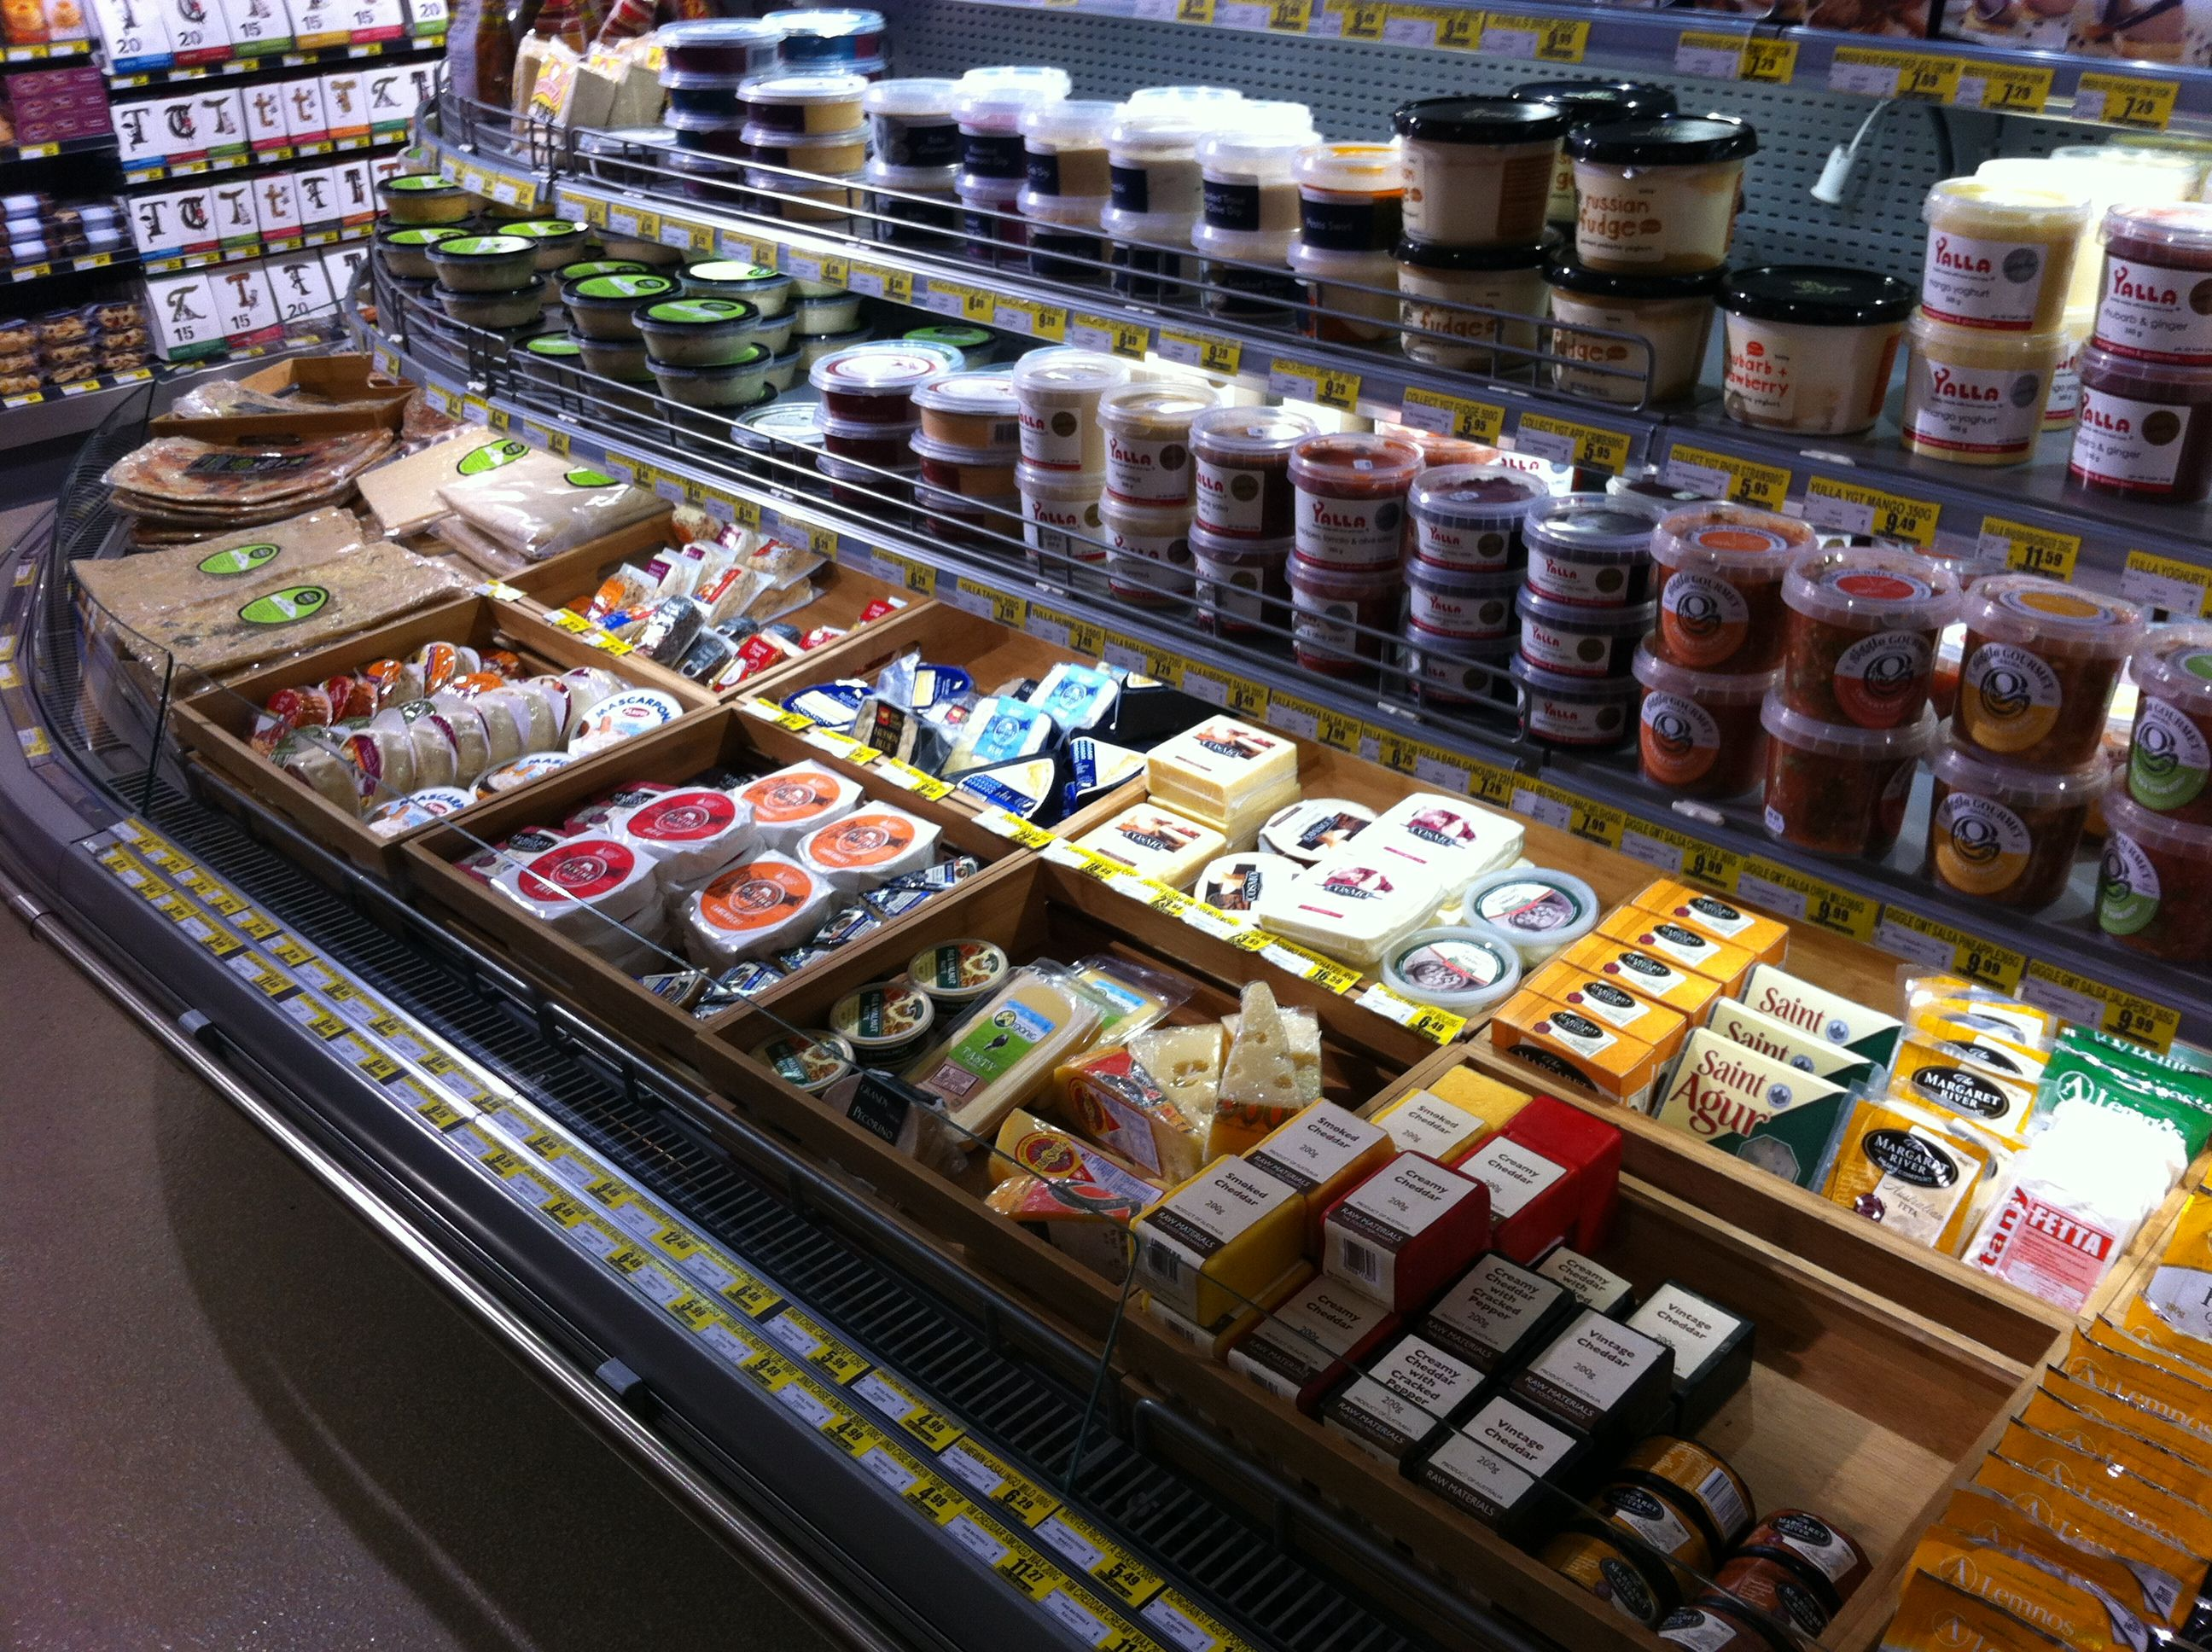 Add an organic look by using timber crates in your deli